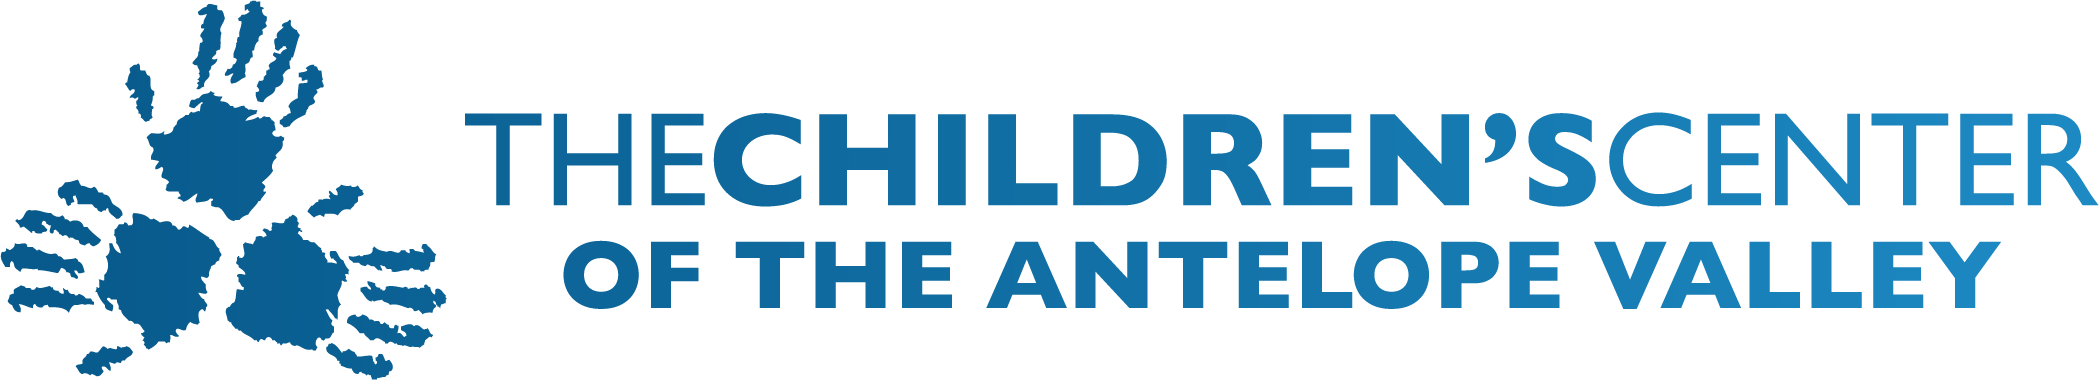 The Children's Center of the Antelope Valley logo